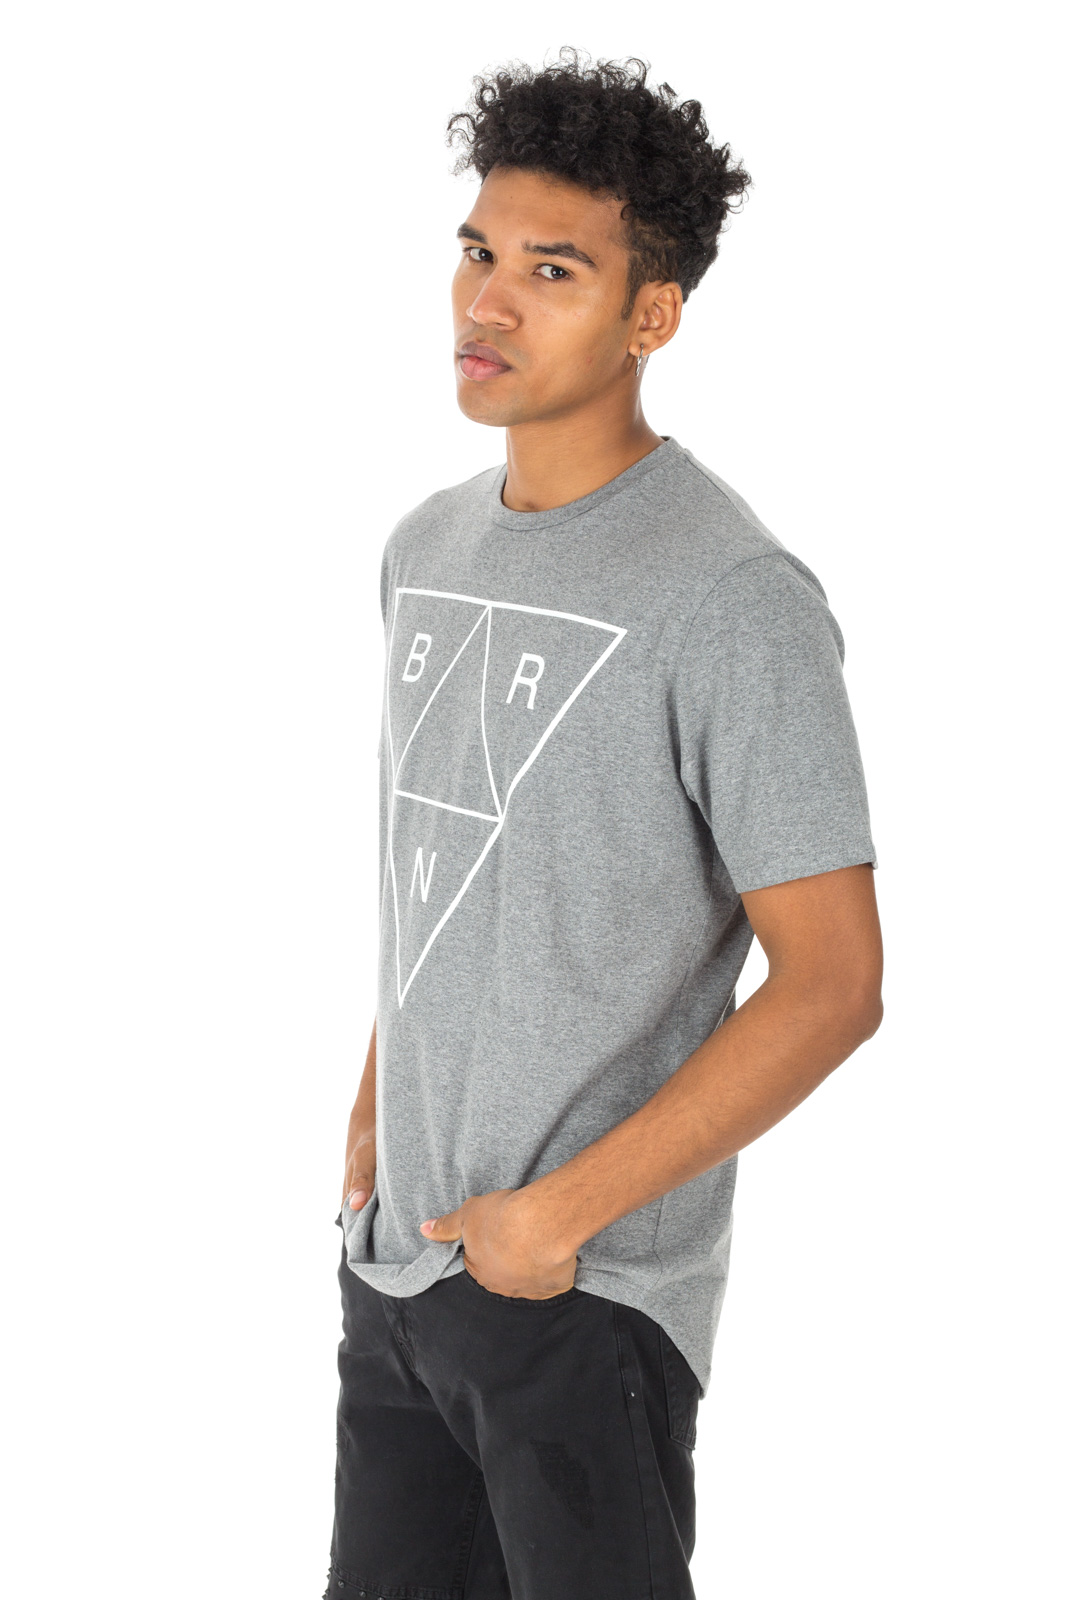 Berna - Gray t-shirt with white logo